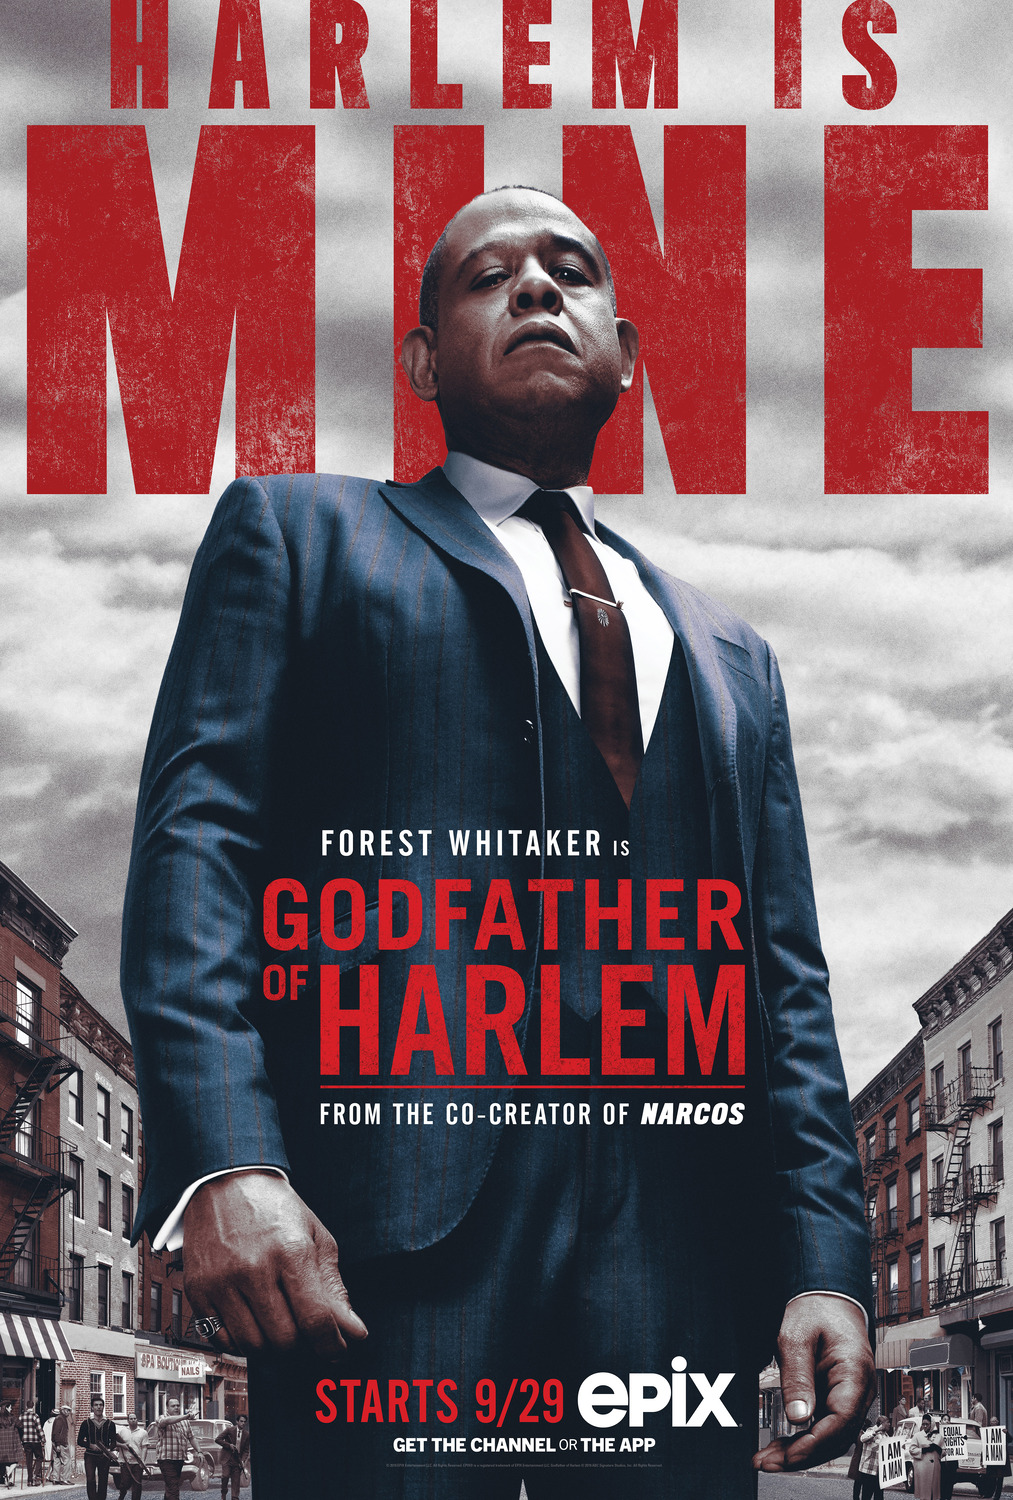 Extra Large Movie Poster Image for Godfather of Harlem